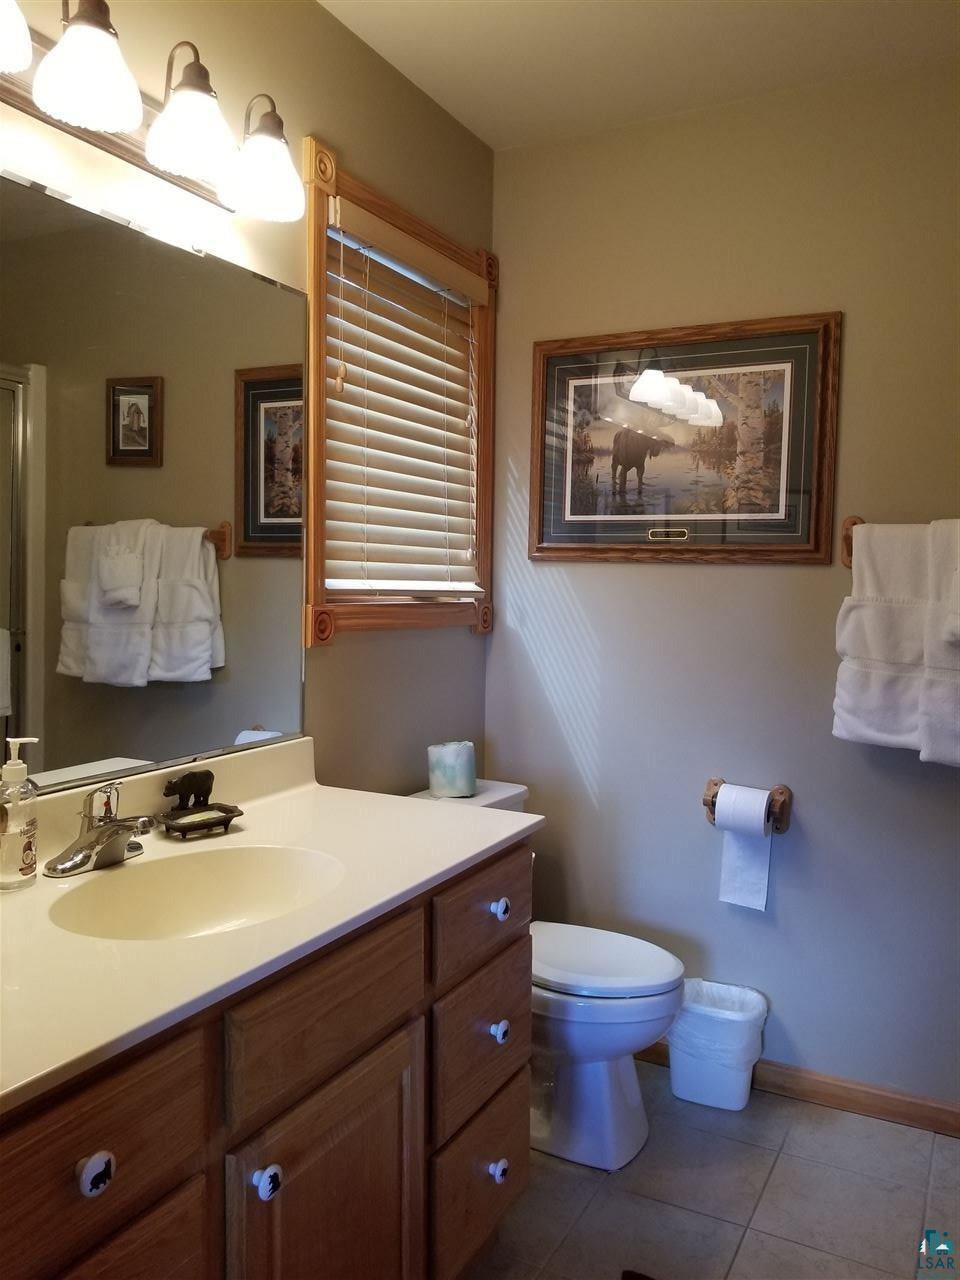 34745 Madeline Tr The Pines, Apt #4